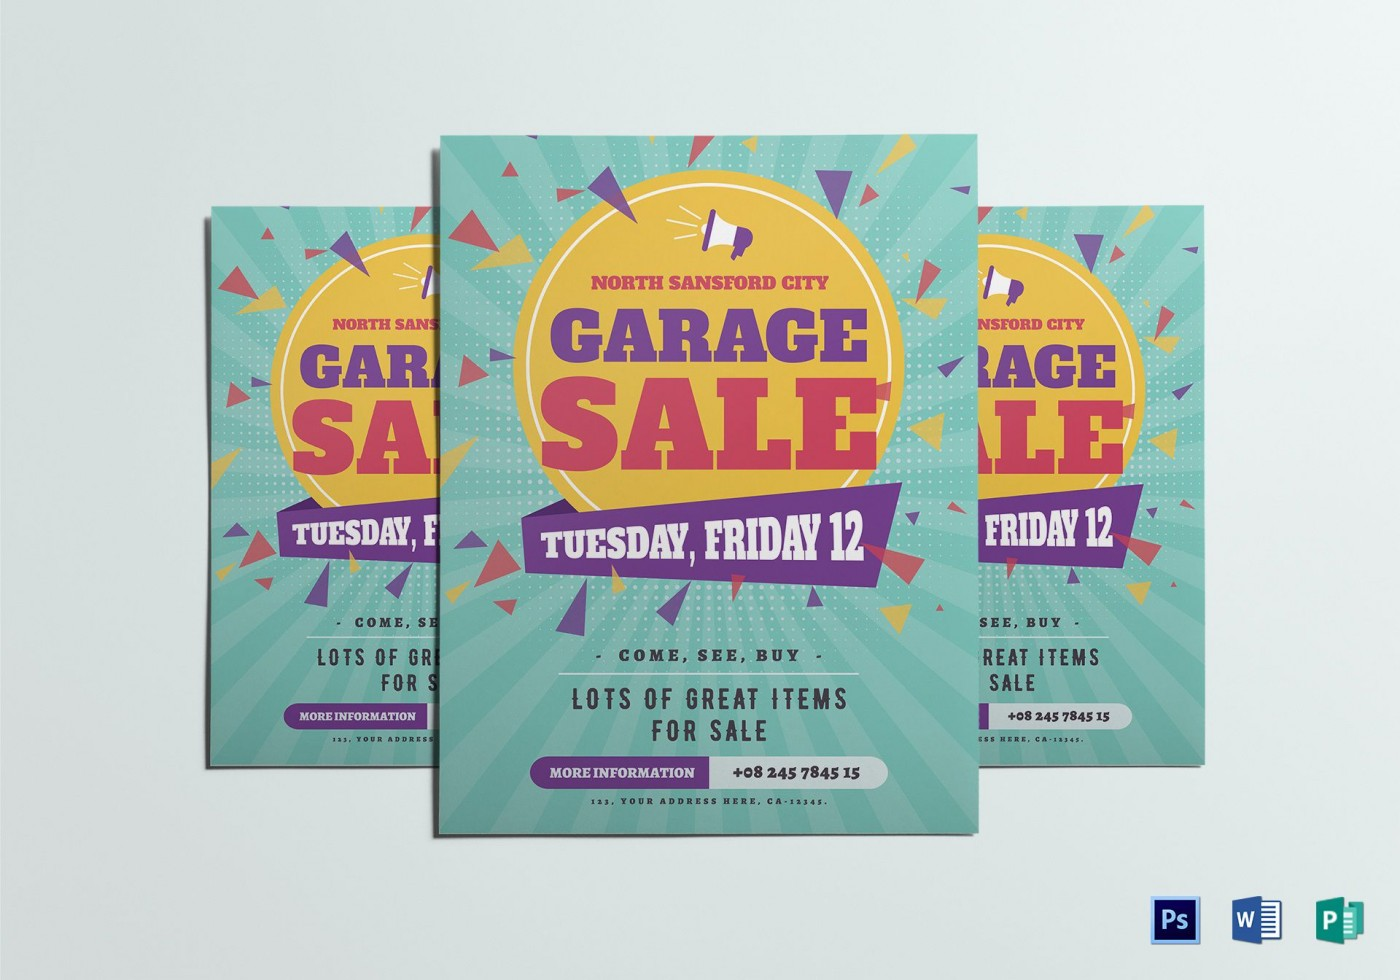 007 Wondrou Yard Sale Flyer Template Idea  Free Garage Microsoft Word1400